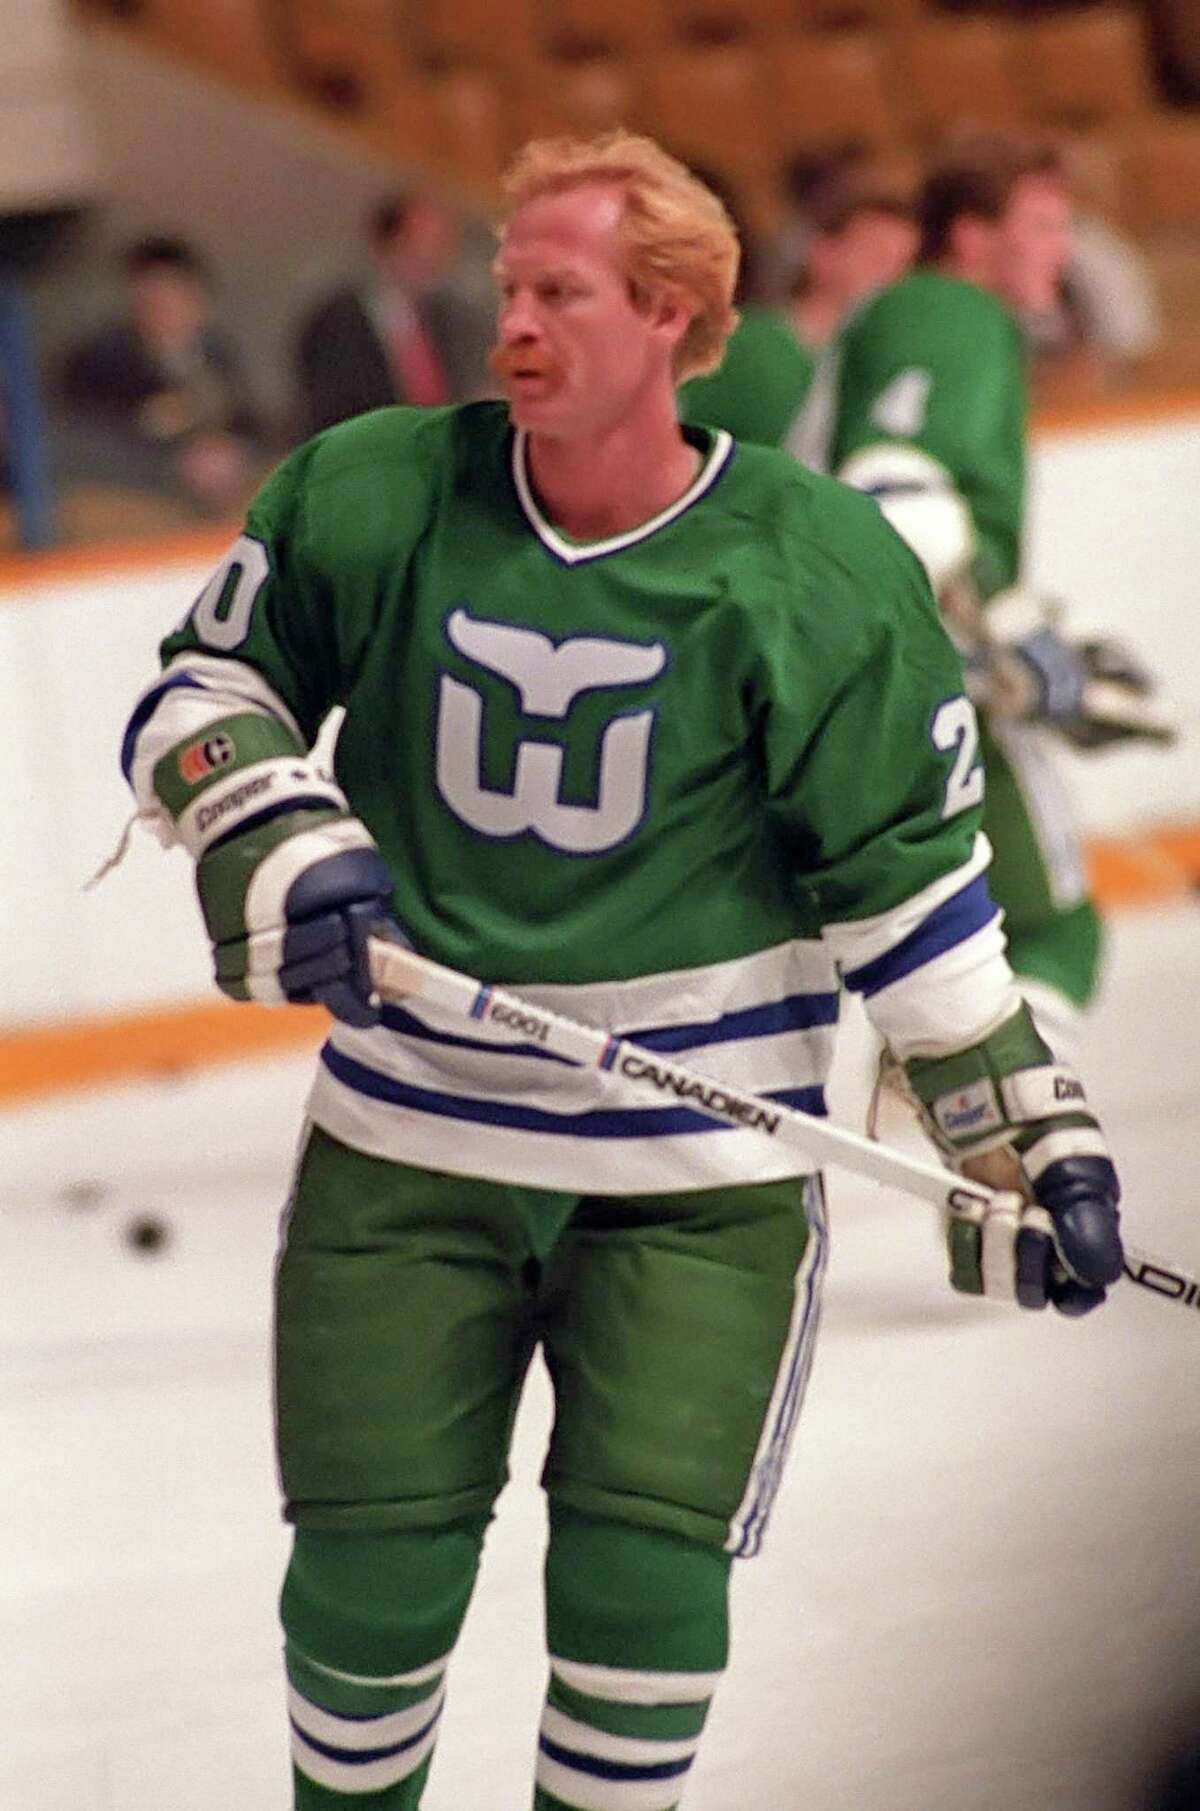 TORONTO, ON - OCTOBER 30: John Anderson #20 of the Hartford Whalers skates against the Toronto Maple Leafs during NHL game action on October 30, 1986 at Maple Leaf Gardens in Toronto, Ontario, Canada. Toronto defeated Hartford 6-2. (Photo by Graig Abel/Getty Images)